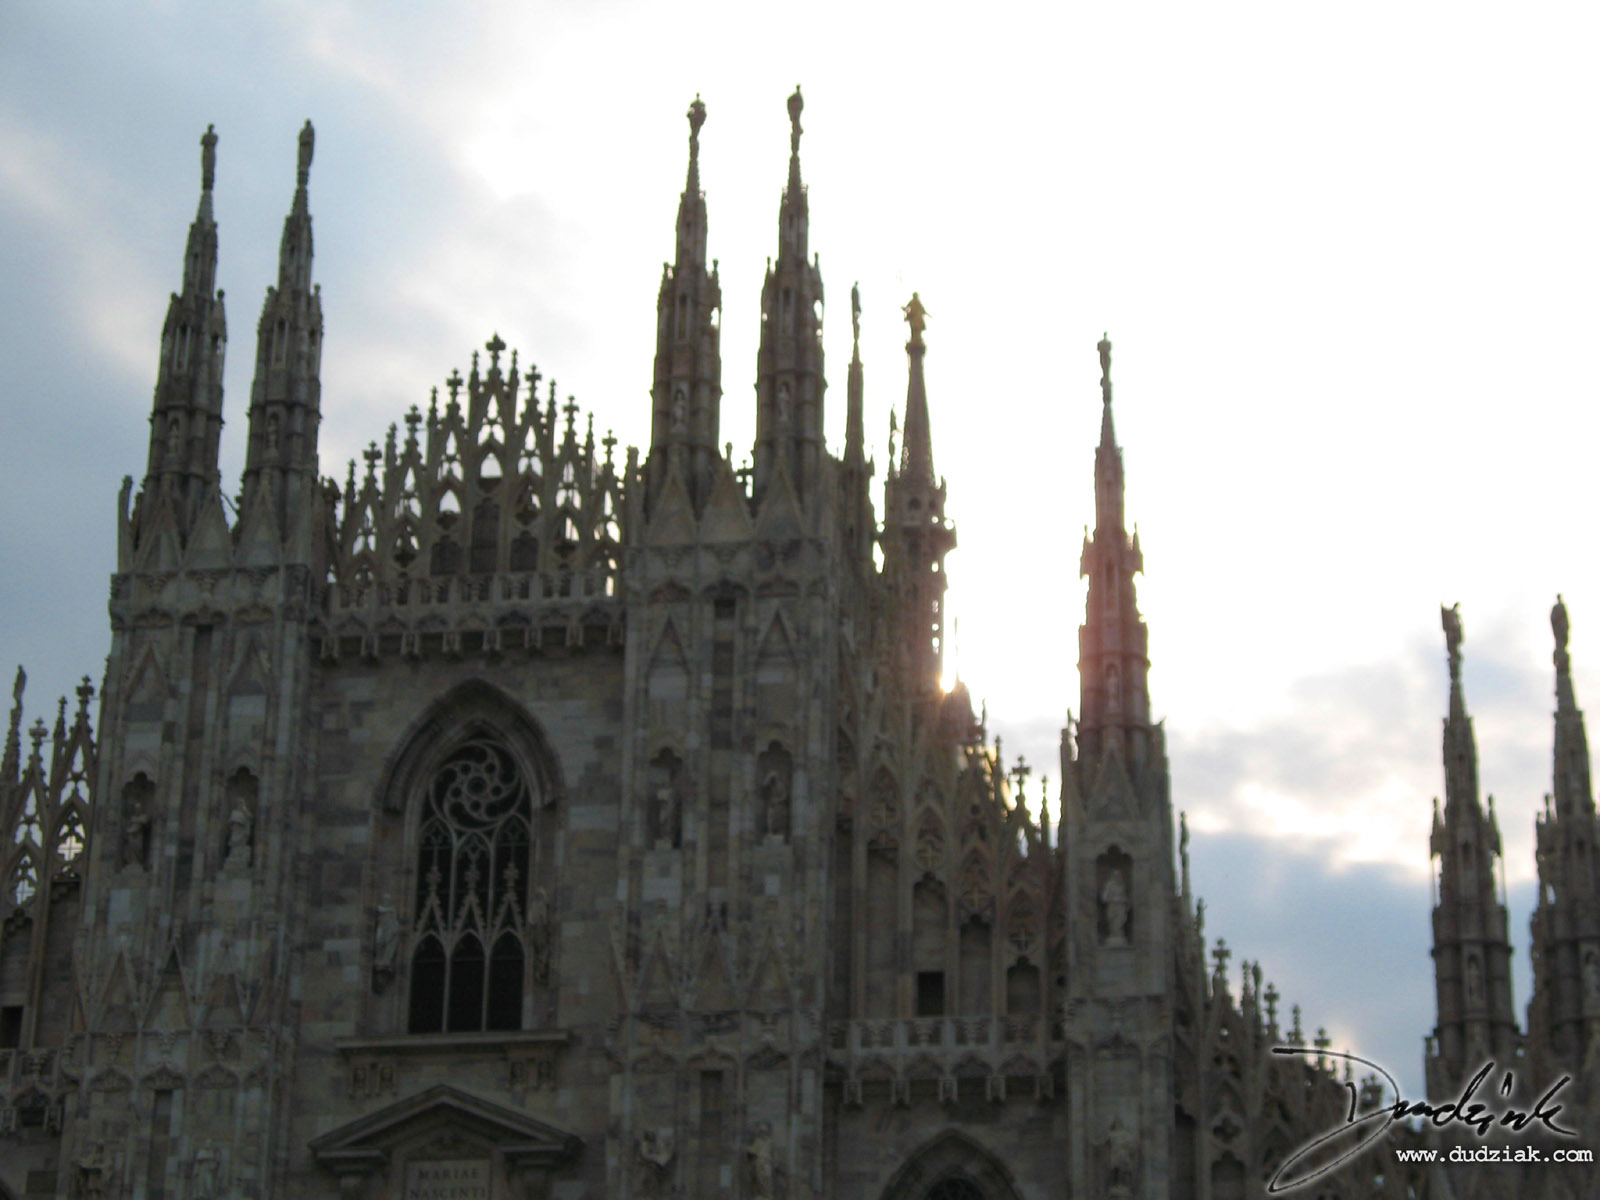 Picture of the upper front fo the Cathedral of Milan in Milan, Italy.